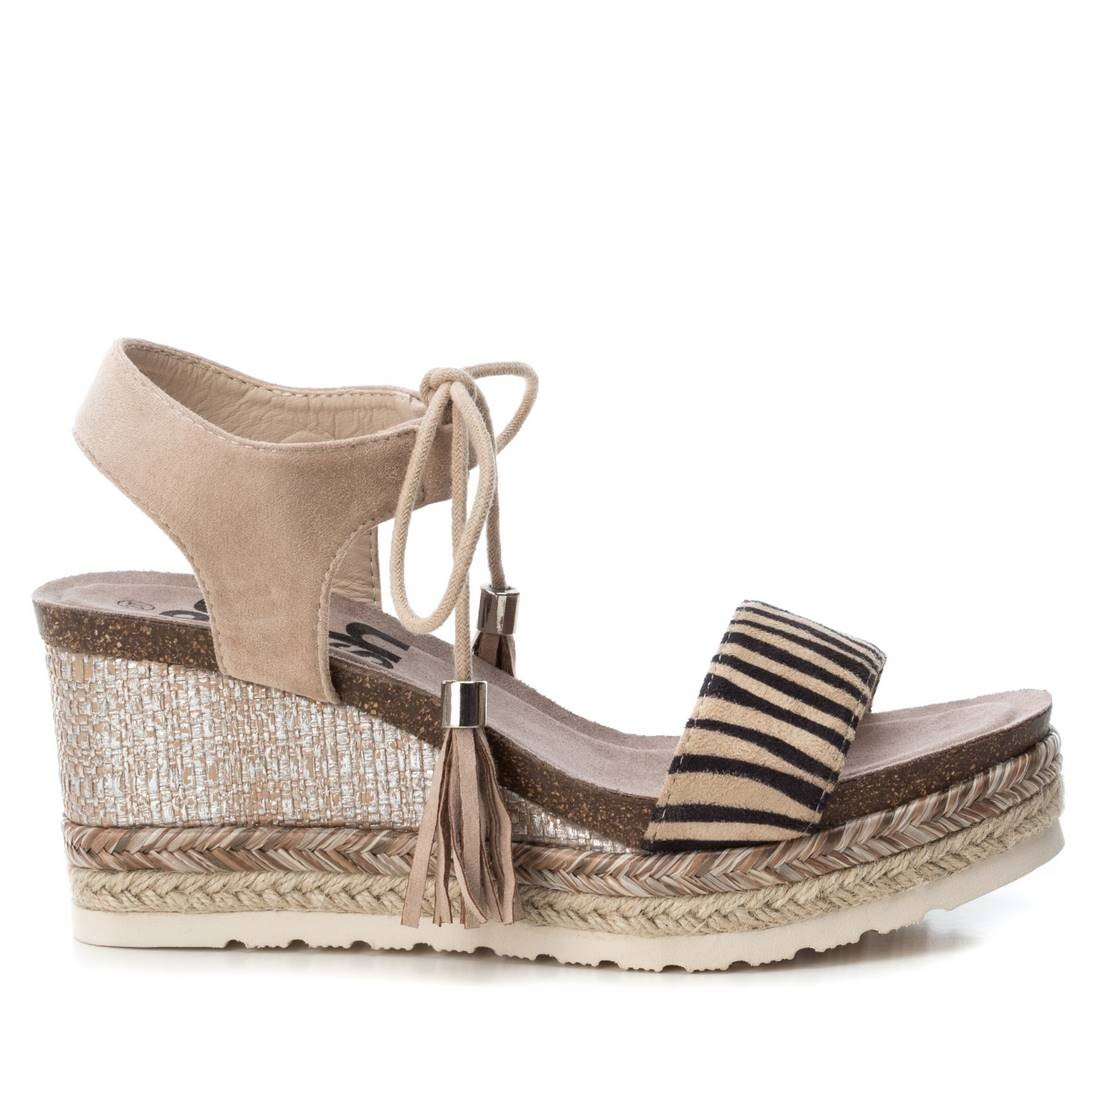 Comprar Refresh Zebra print wool leather sandals - Wedge height: 8cm